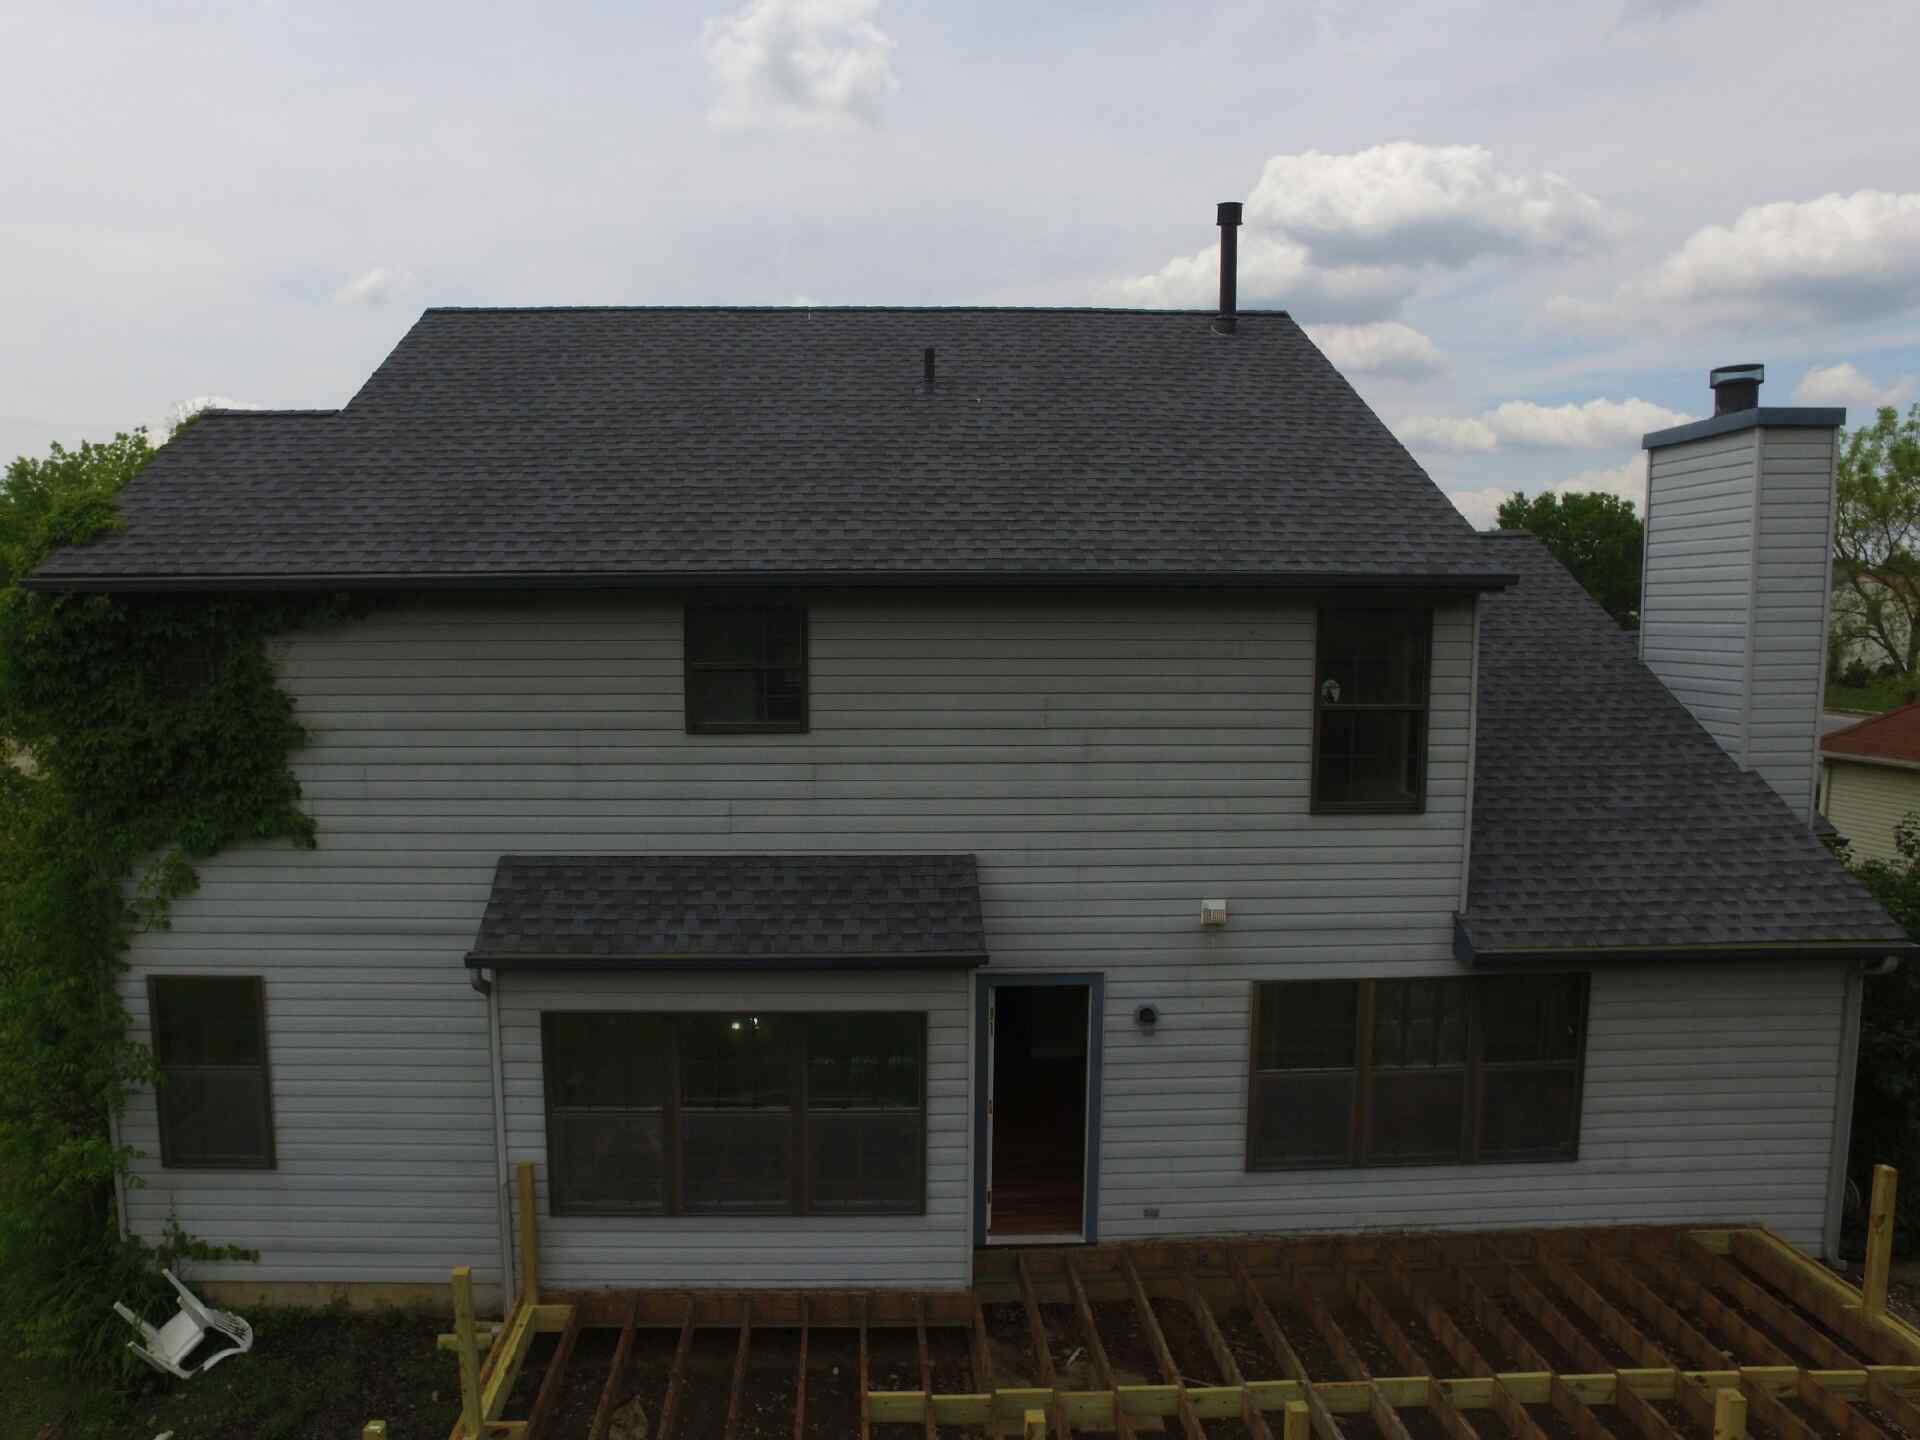 Gaf Timberline Hd Lifetime Roofing System With Pewter Gray